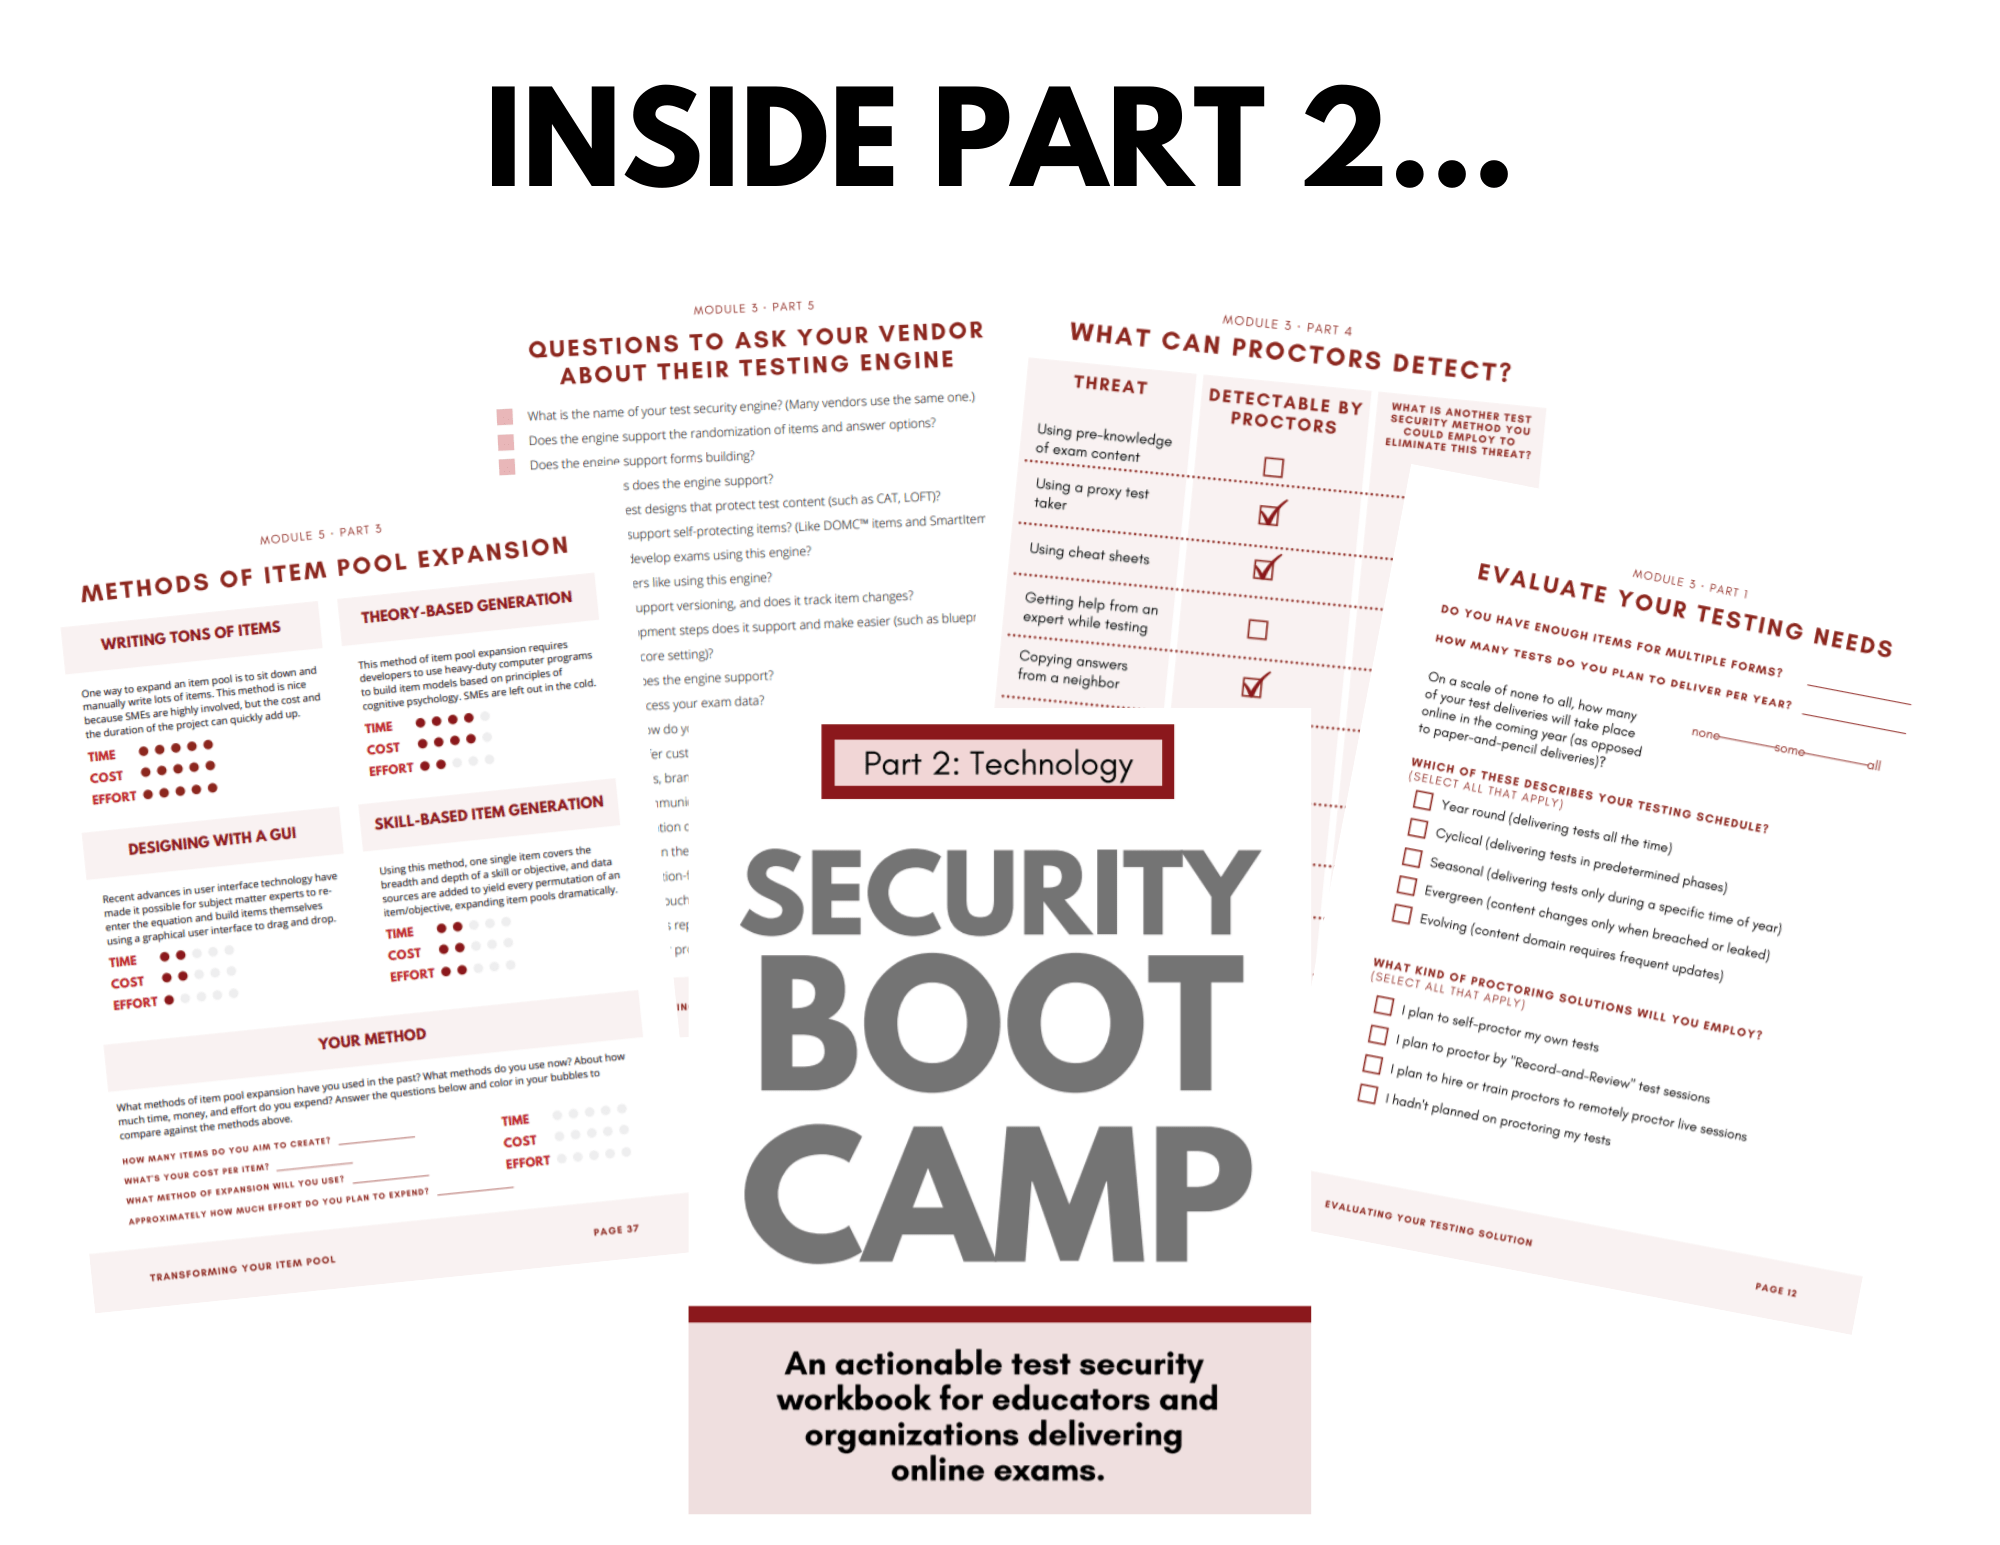 Security Boot Camp Part 2 Technology